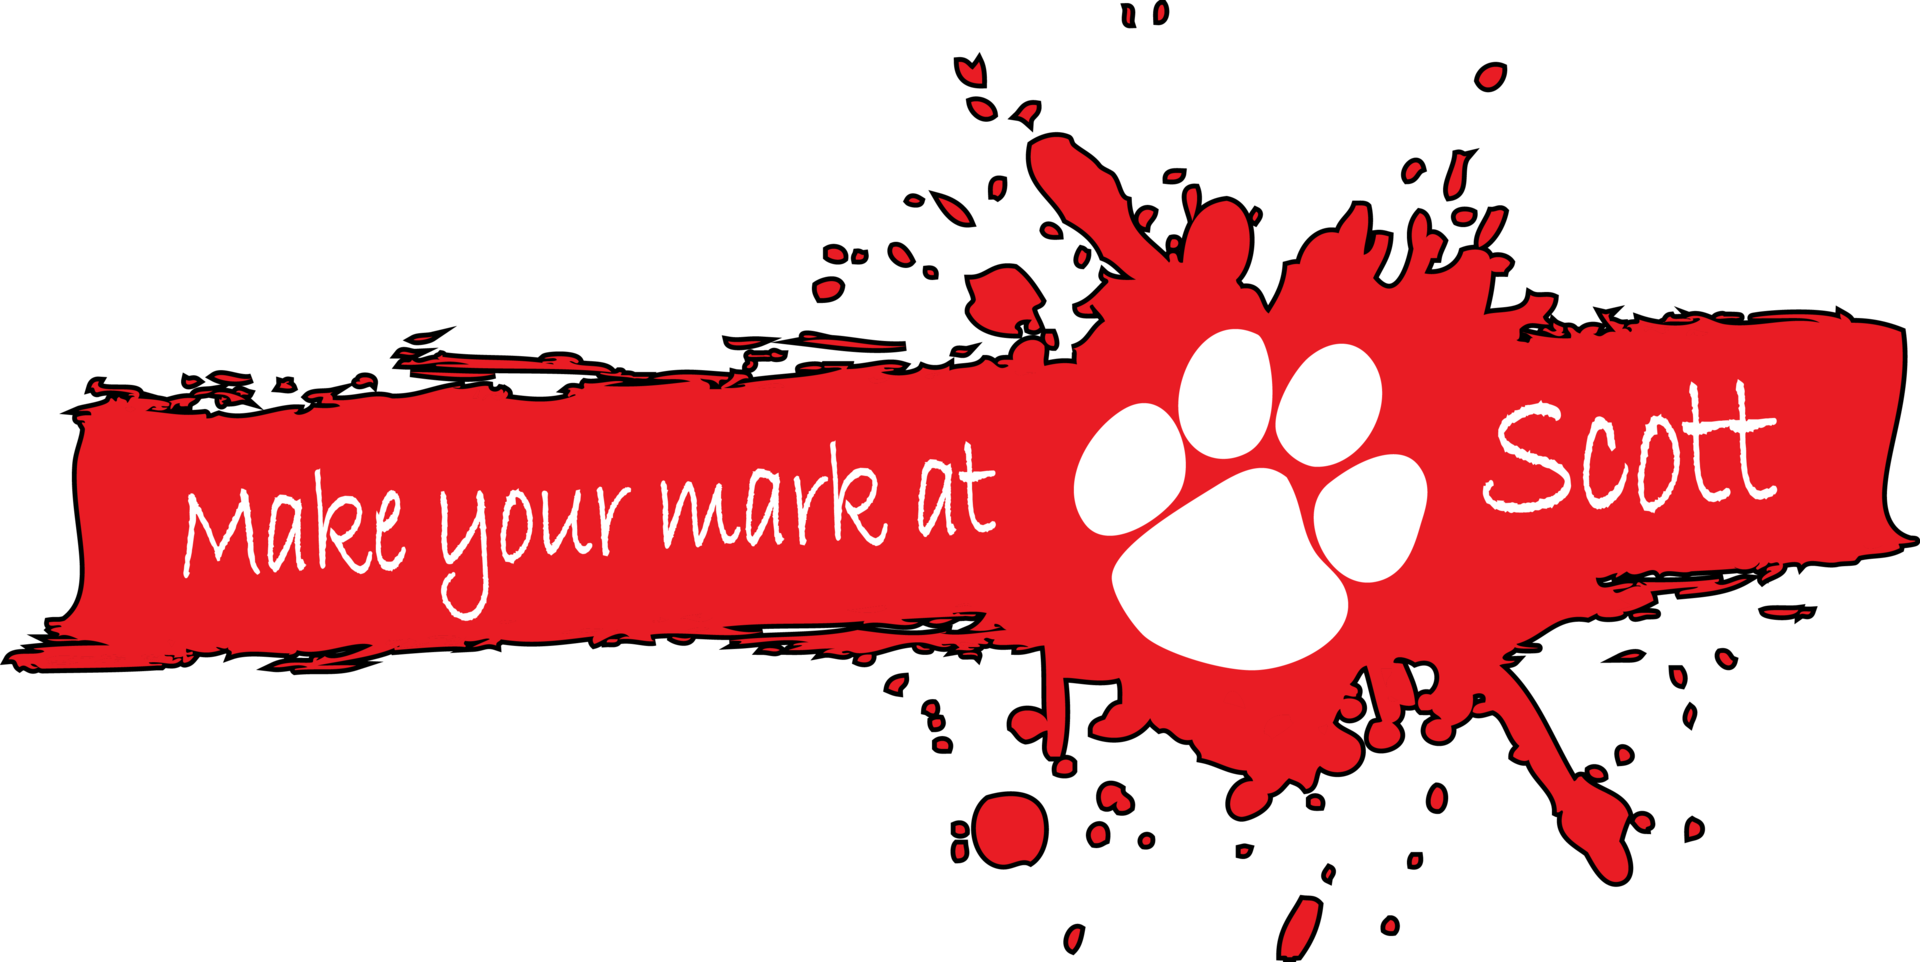 'Make Your Mark at Scott' theme logo.